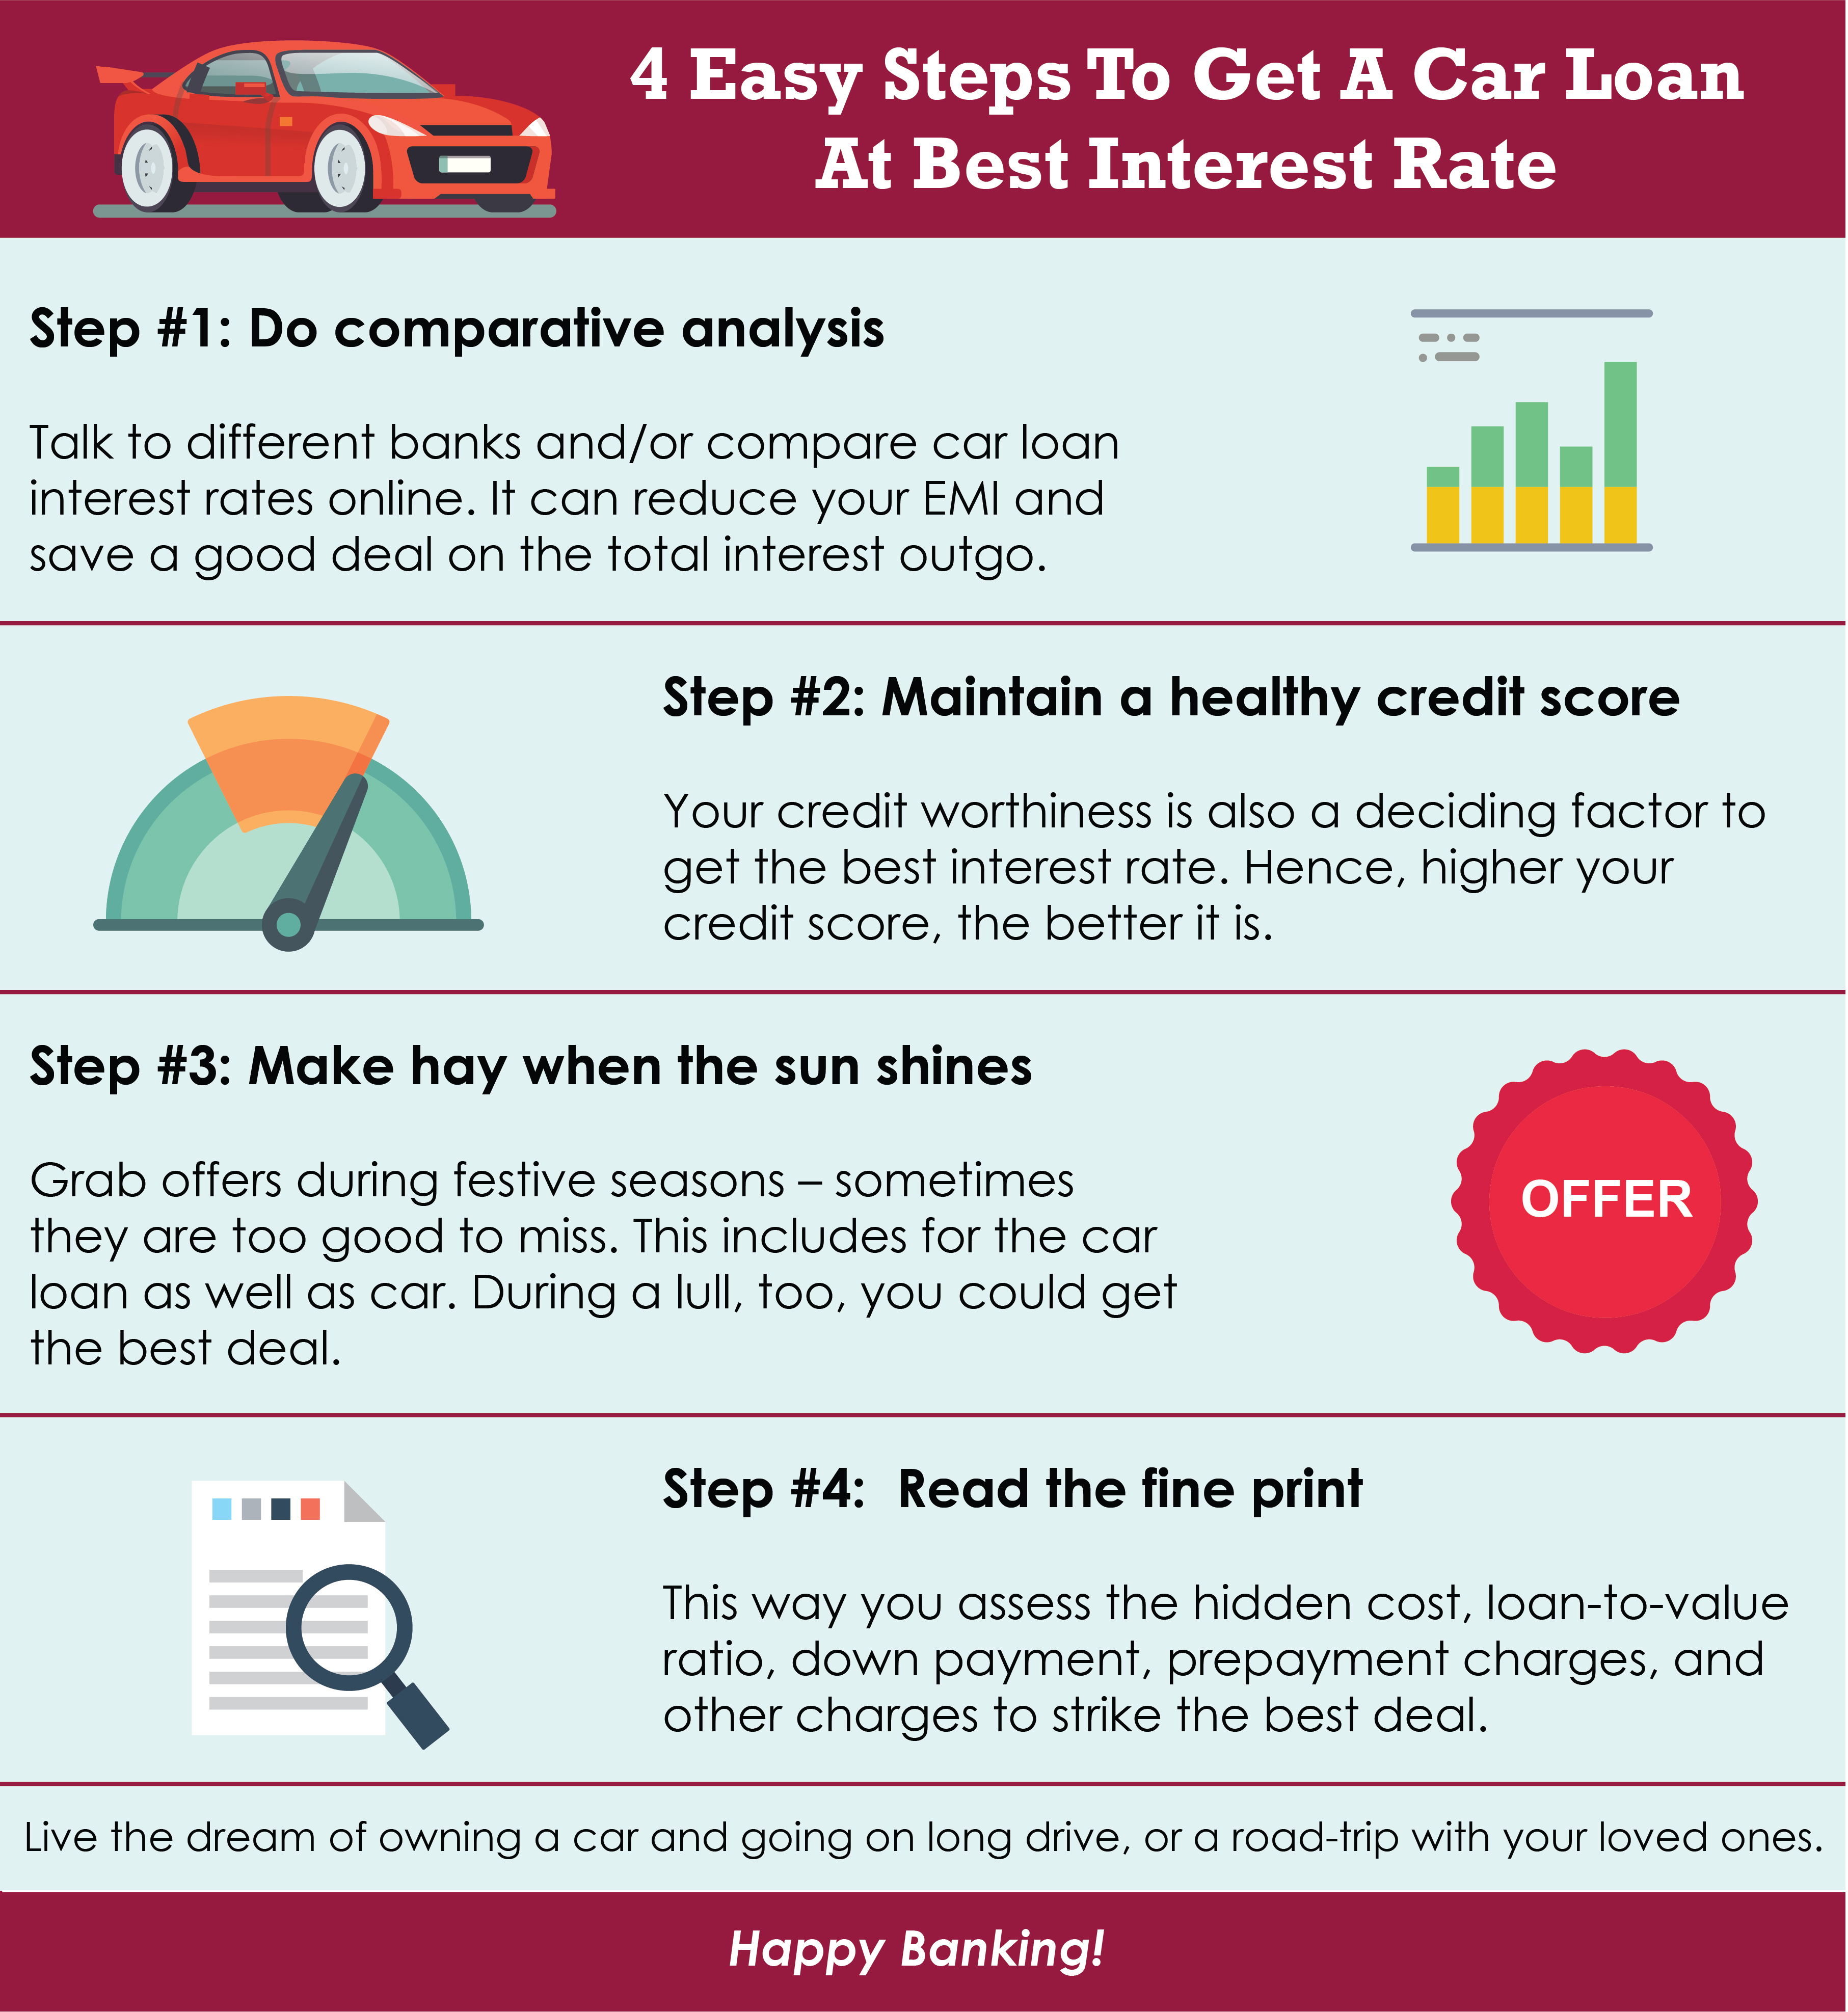 4 Easy Steps To Get A Car Loan At Best Interest Rate-Link 6